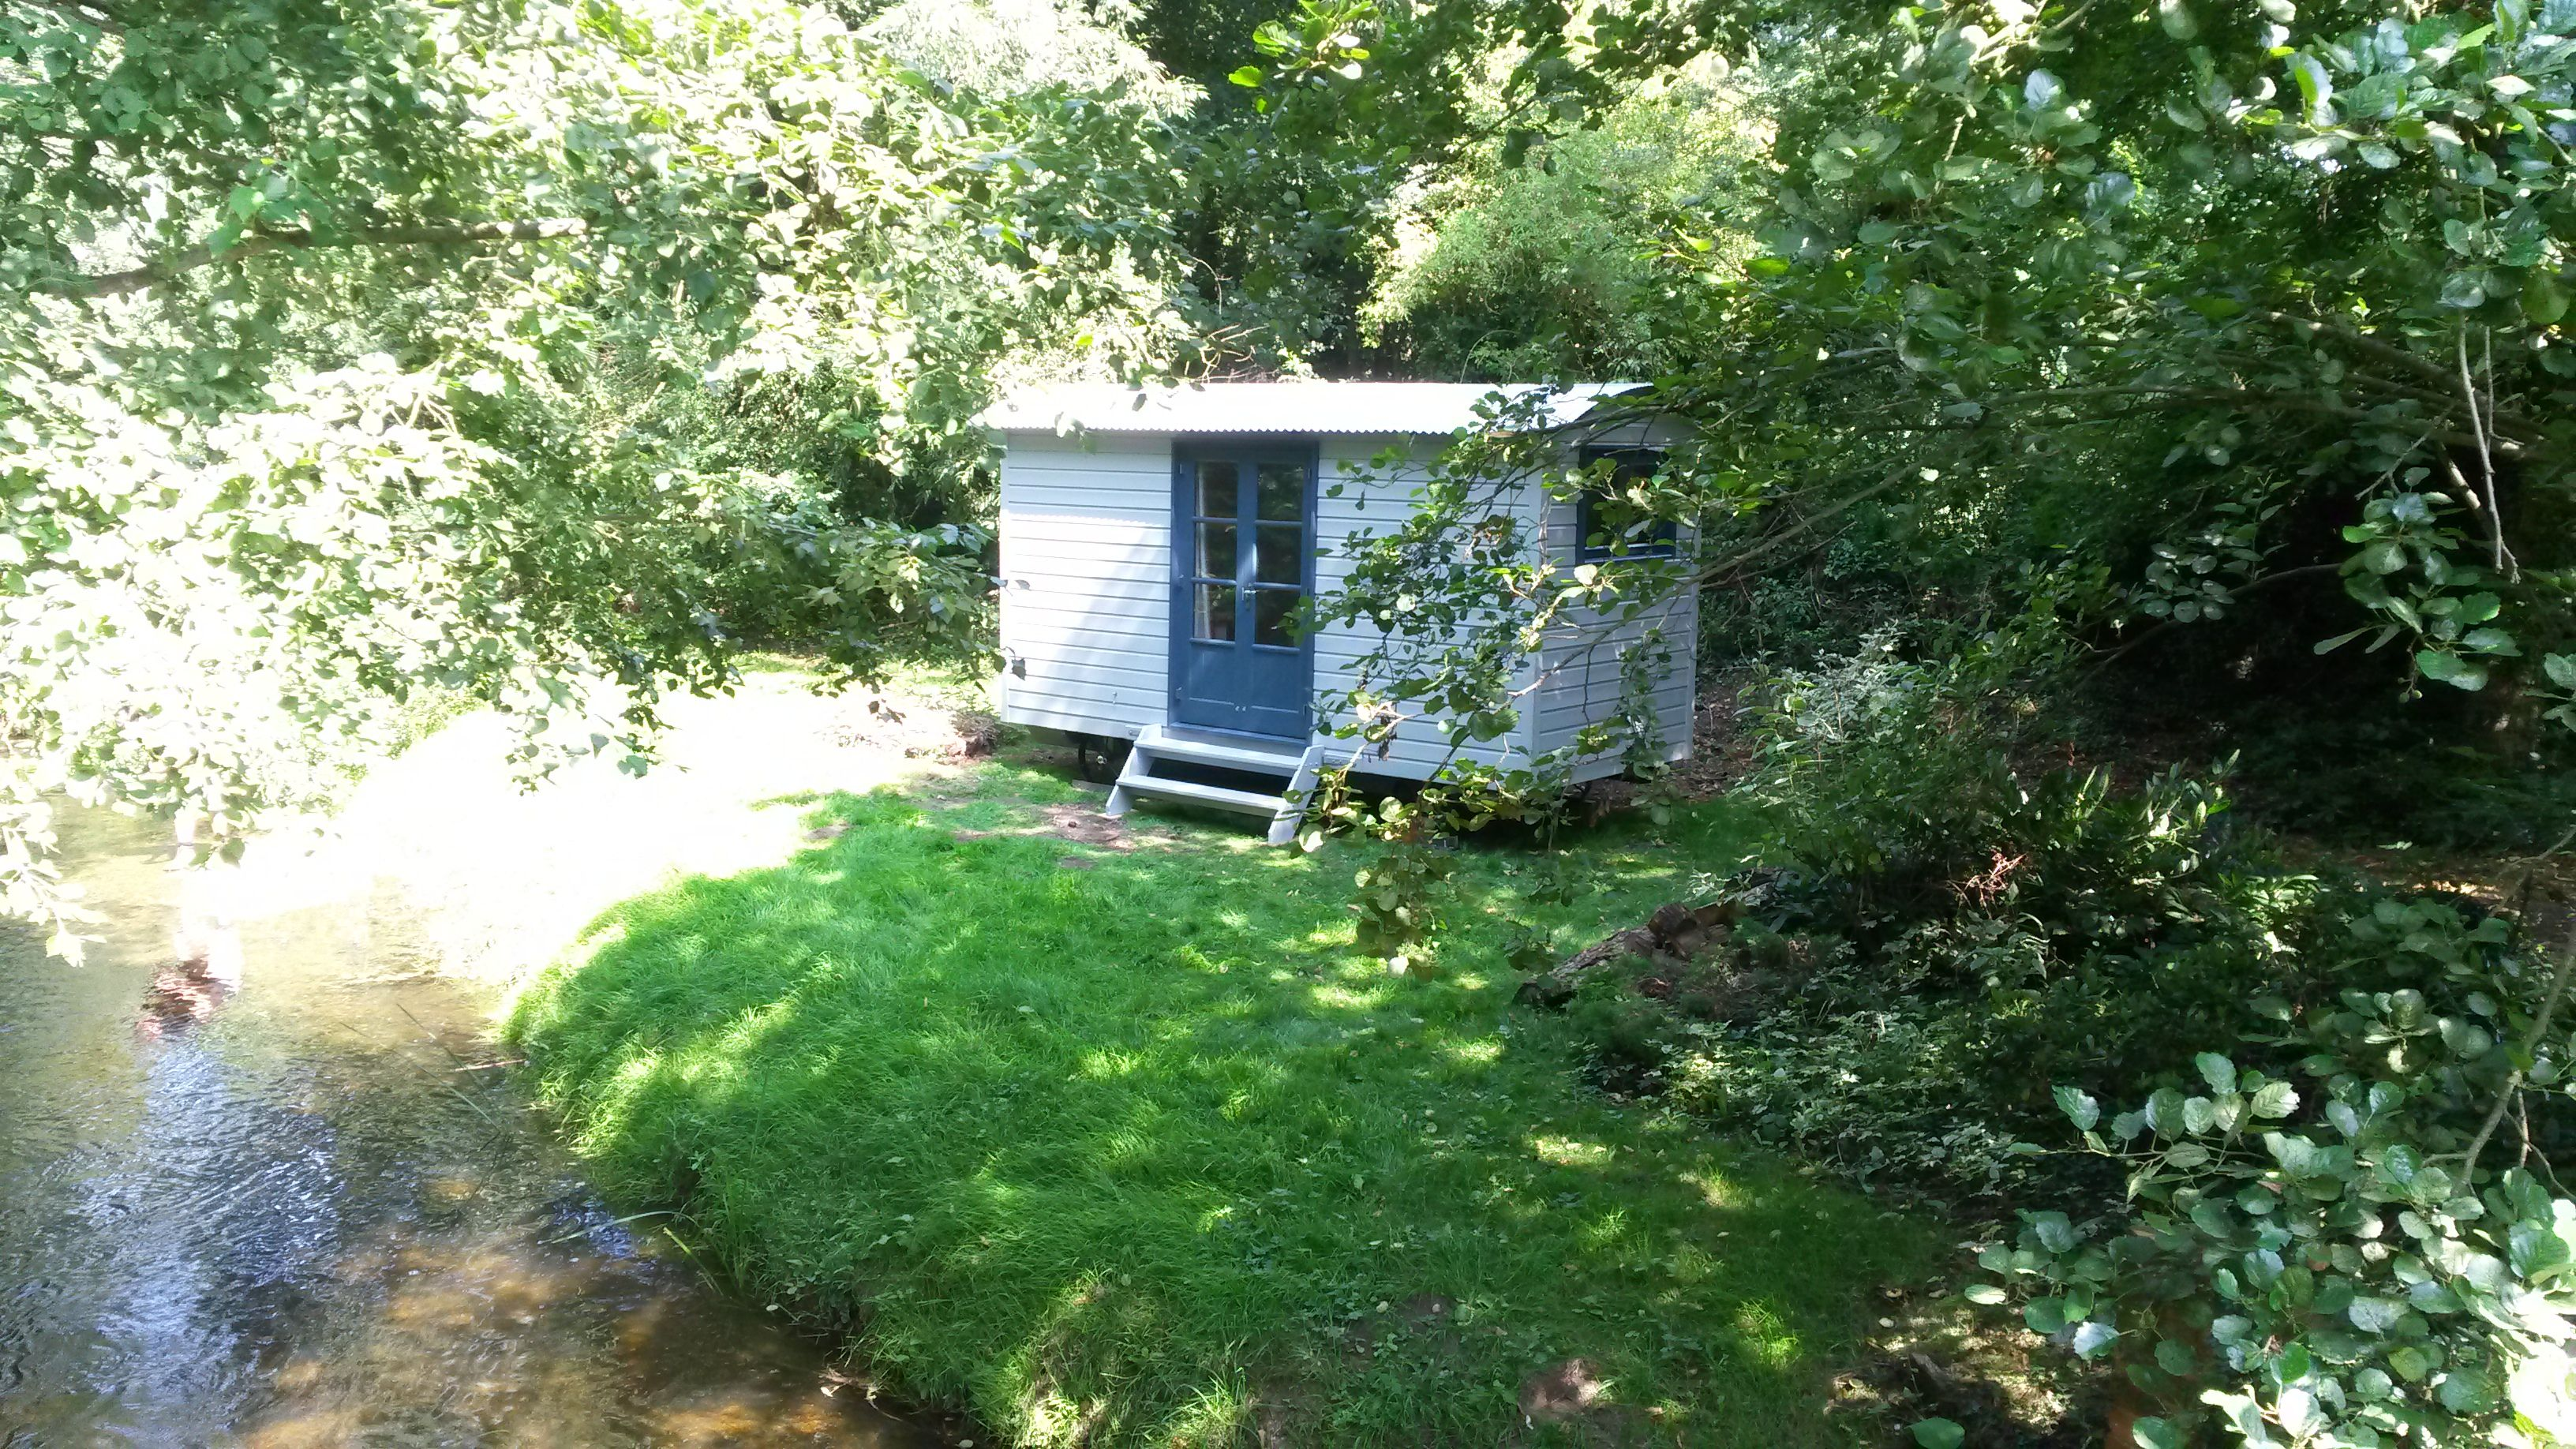 Shepherds Hut by the lakeside